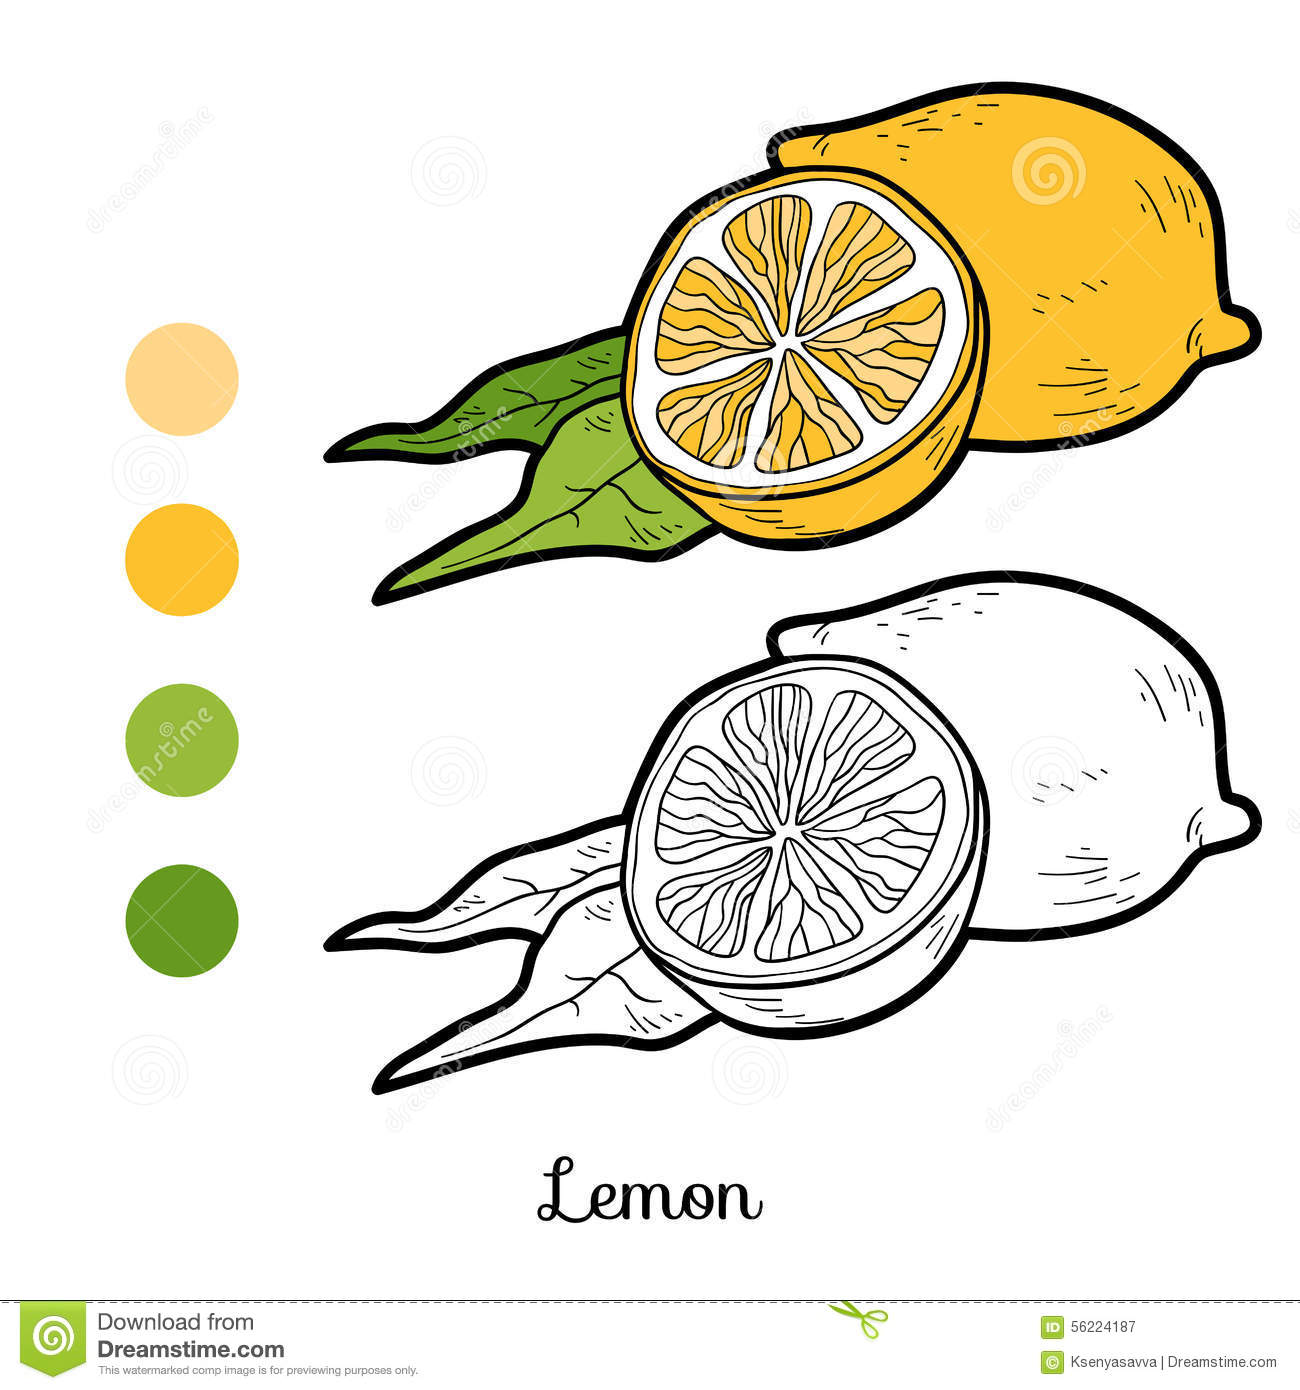 Coloring book pictures of vegetables - Coloring Book Fruits And Vegetables Lemon Royalty Free Stock Photography